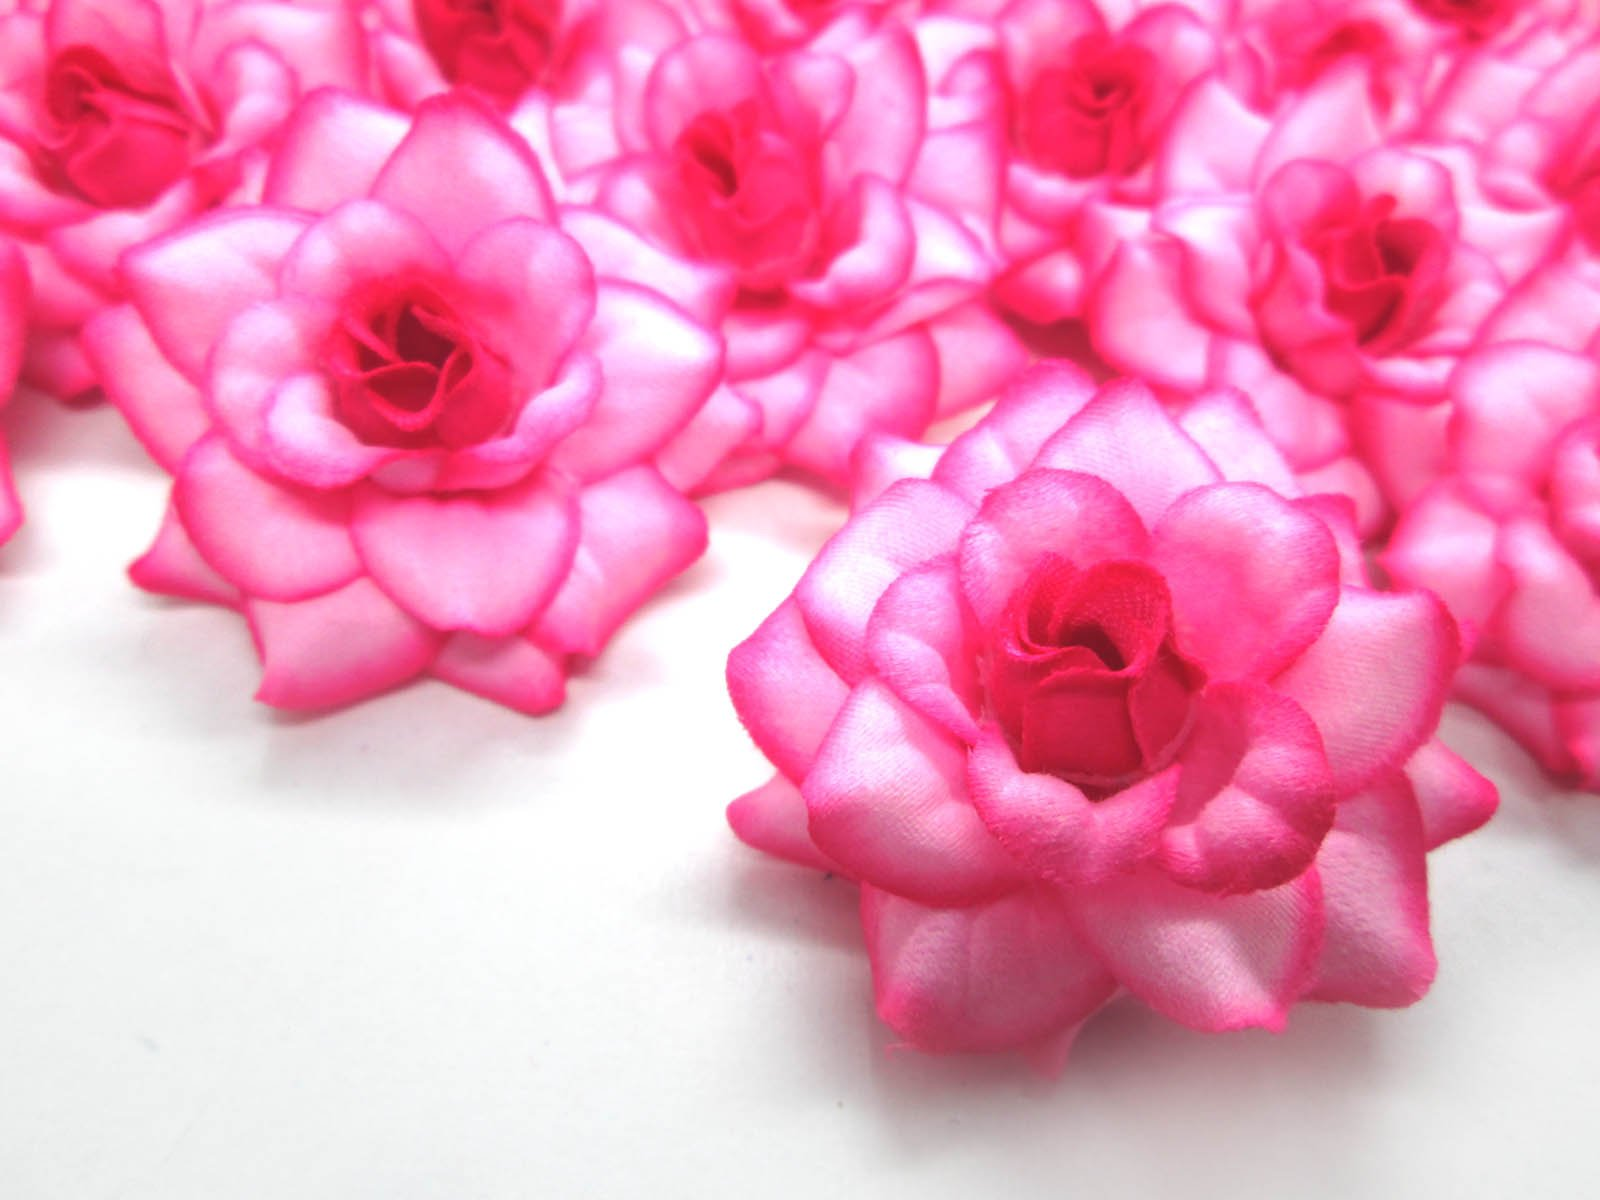 24-Silk-Hot-Pink-Edge-Roses-Flower-Head-175-Artificial-Flowers-Heads-Fabric-Floral-Supplies-Wholesale-Lot-for-Wedding-Flowers-Accessories-Make-Bridal-Hair-Clips-Headbands-Dress